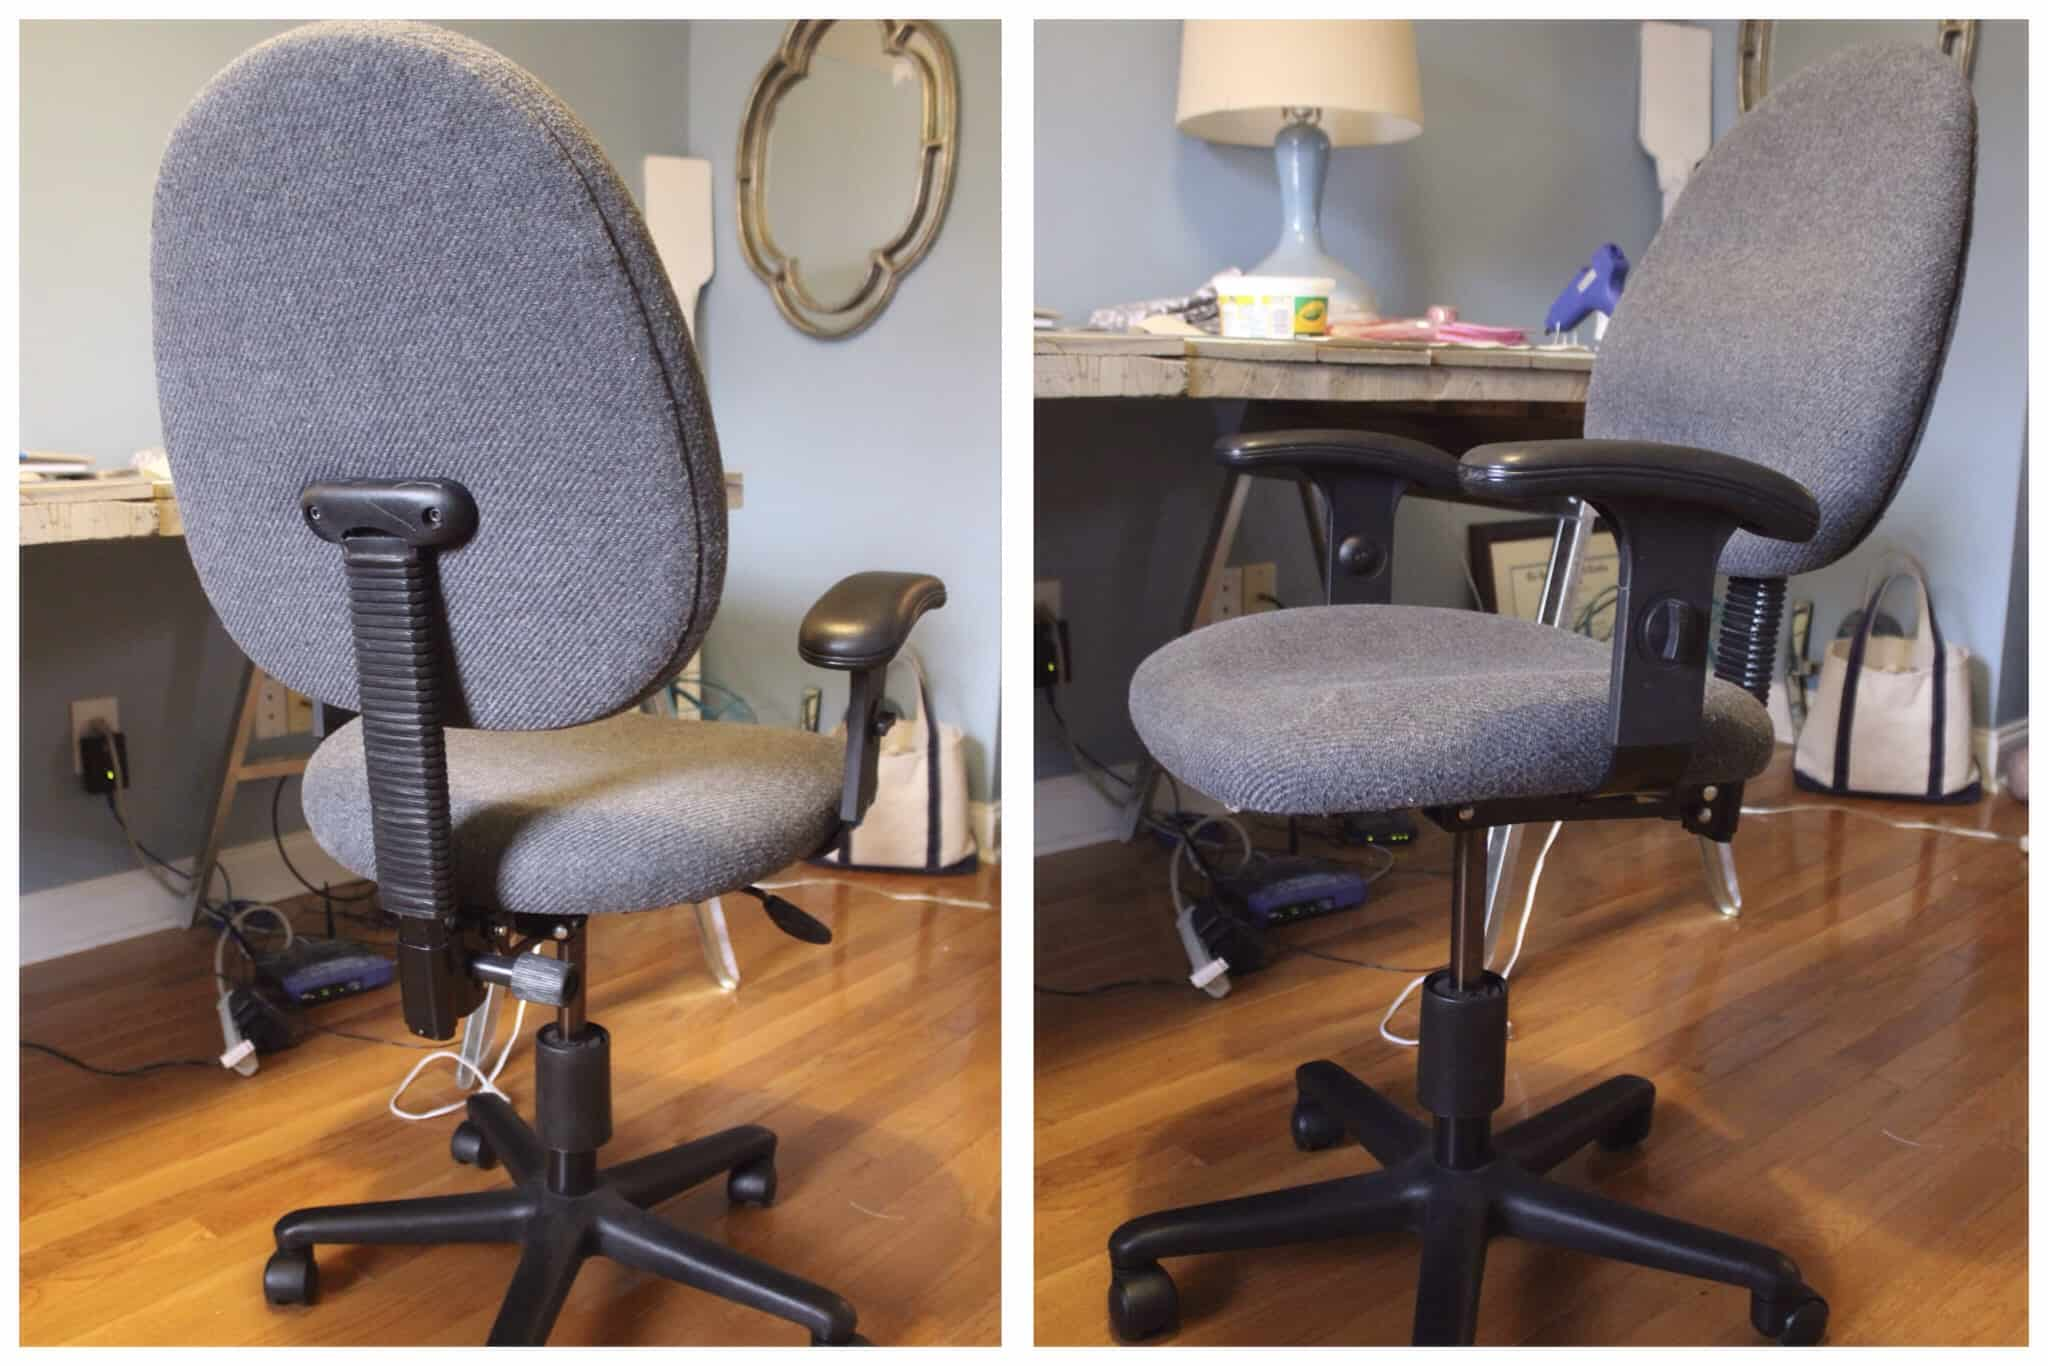 Reupholster Office Chair Diy Reupholstered Office Chair Simple Stylings